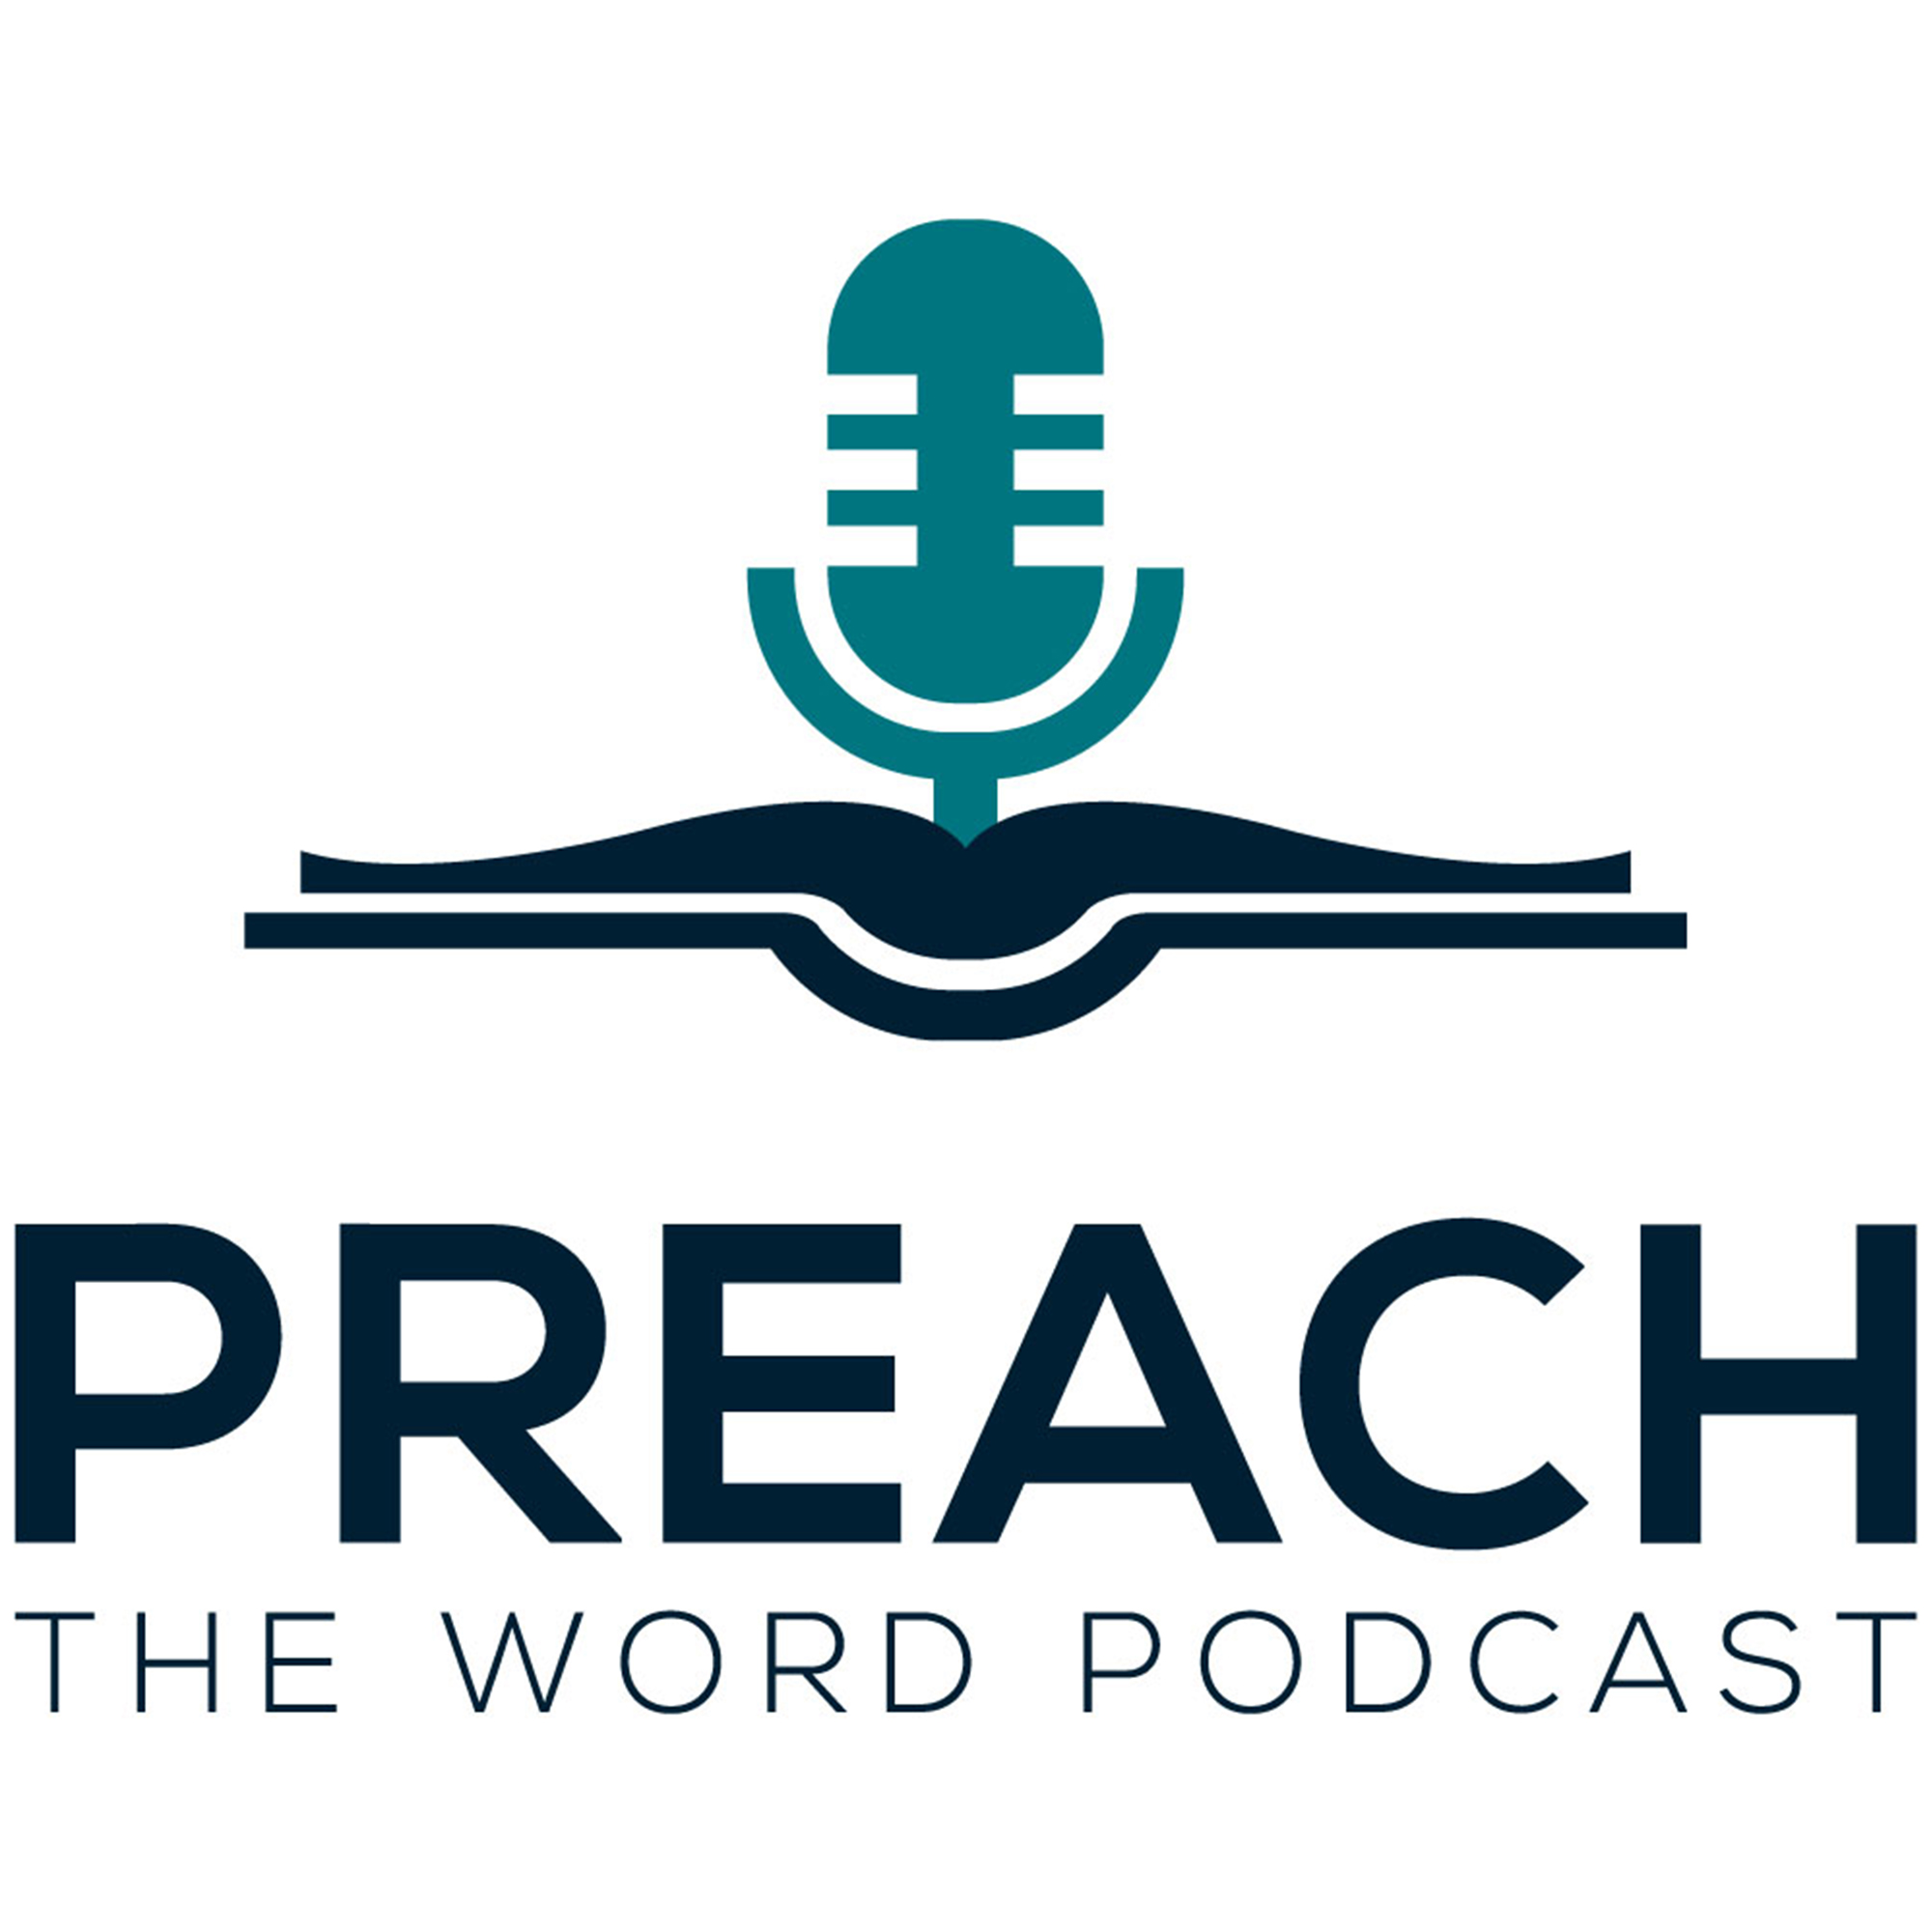 Episode 1 - Introduction to the Preach the Word Podcast